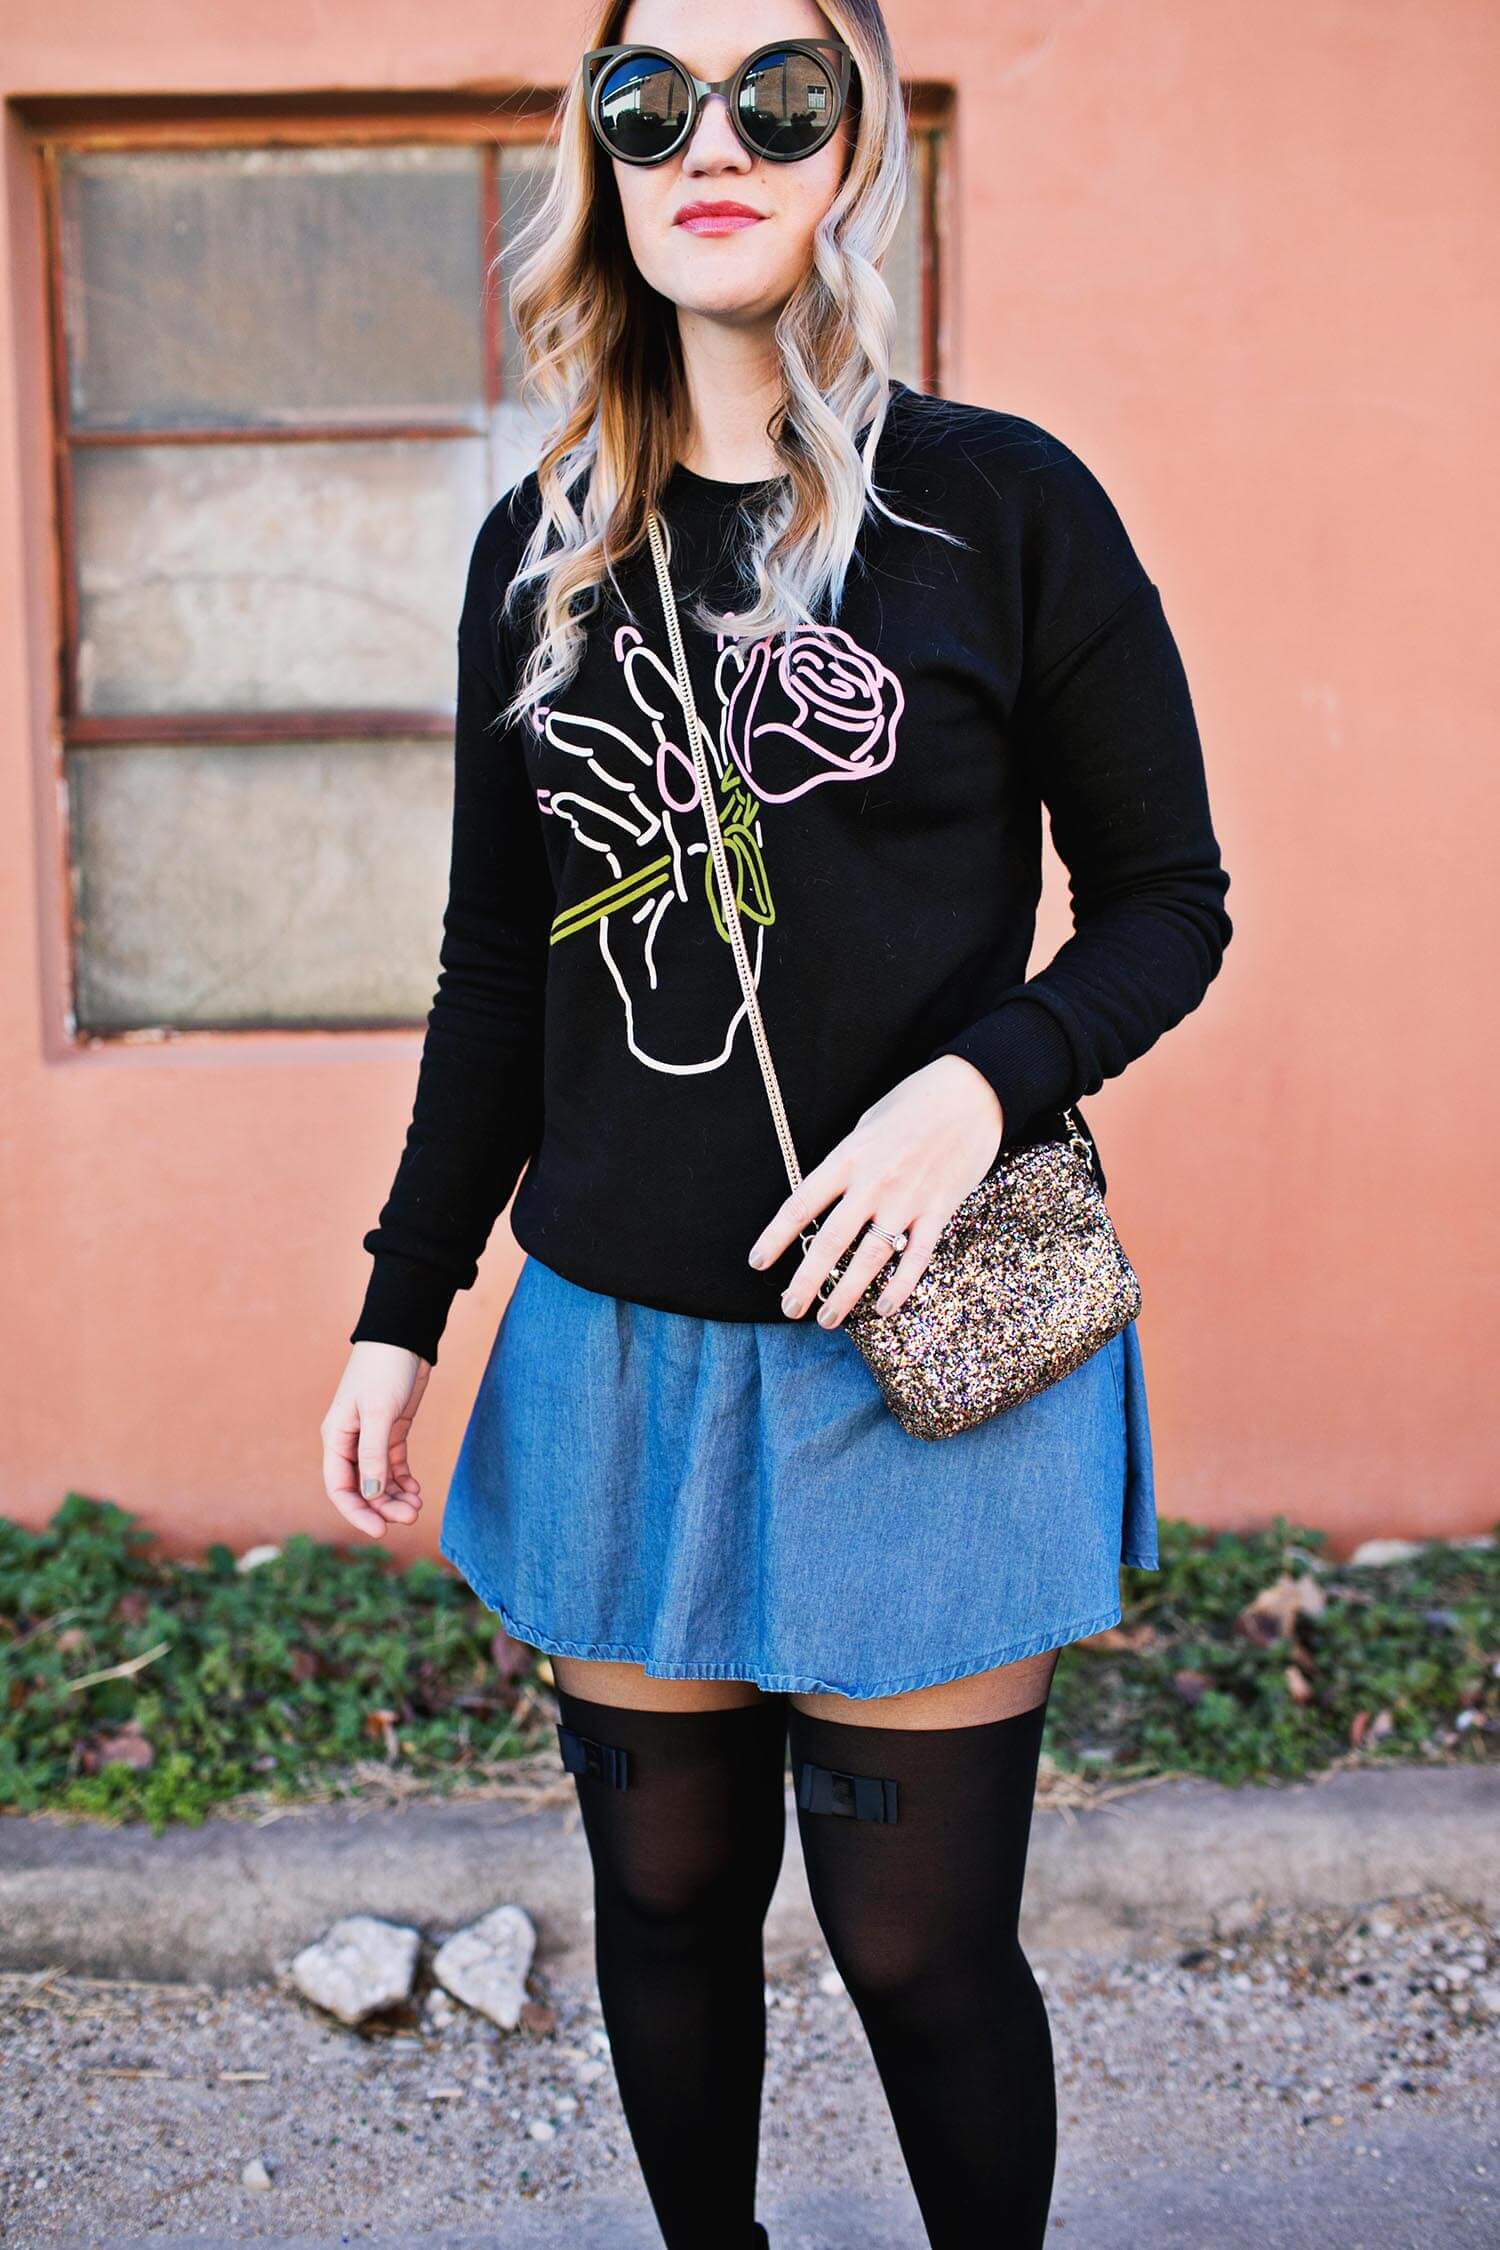 Sweaters and tights